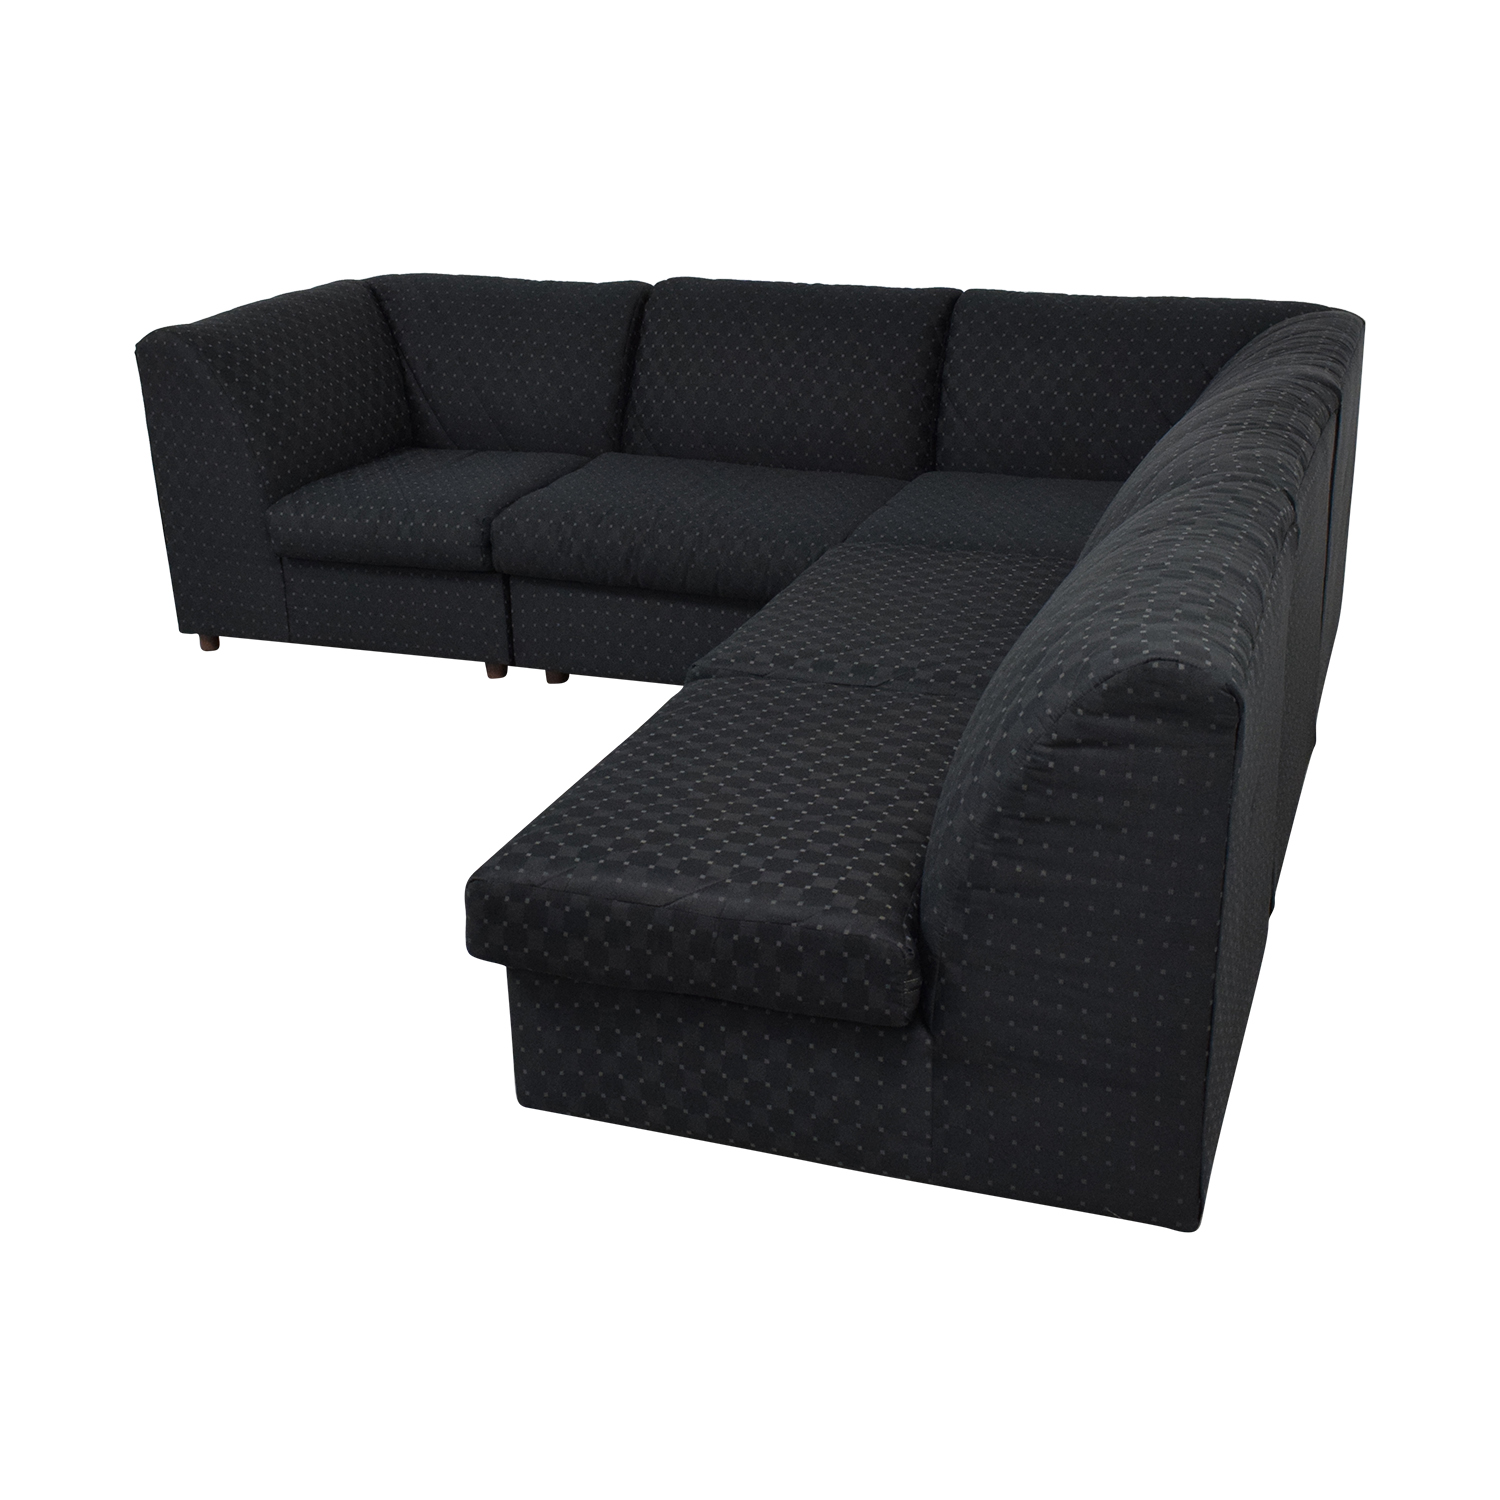 Broyhill Furniture Broyhill Furniture Corner Sectional with Ottoman pa